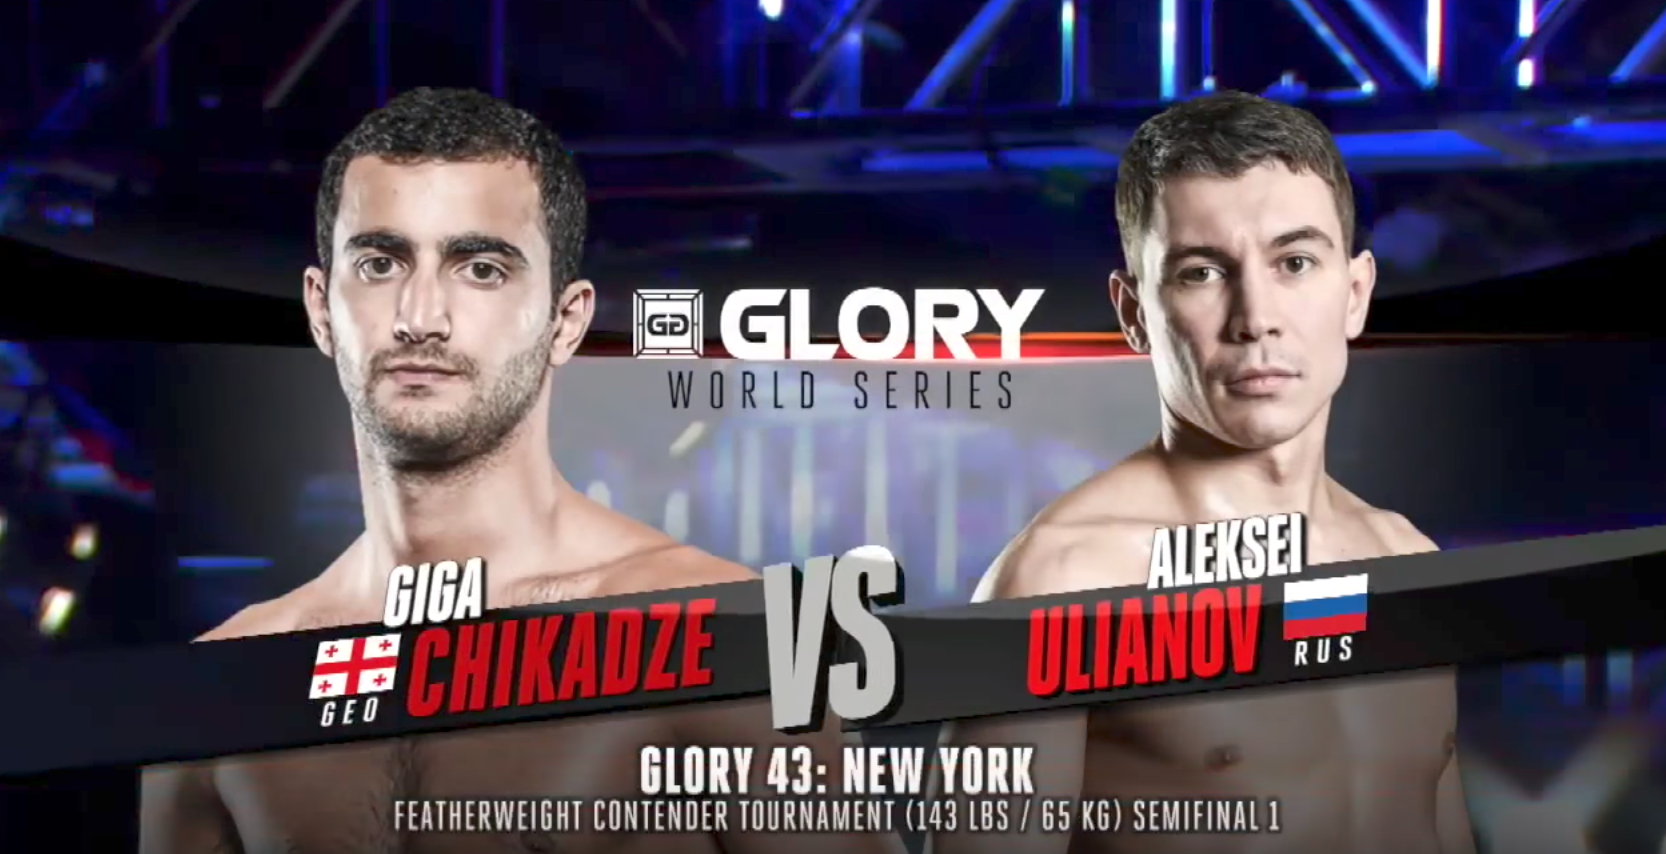 FULL MATCH - Giga Chikadze vs. Aleksei Ulianov - Tournament Sem-finals: GLORY 43 New York